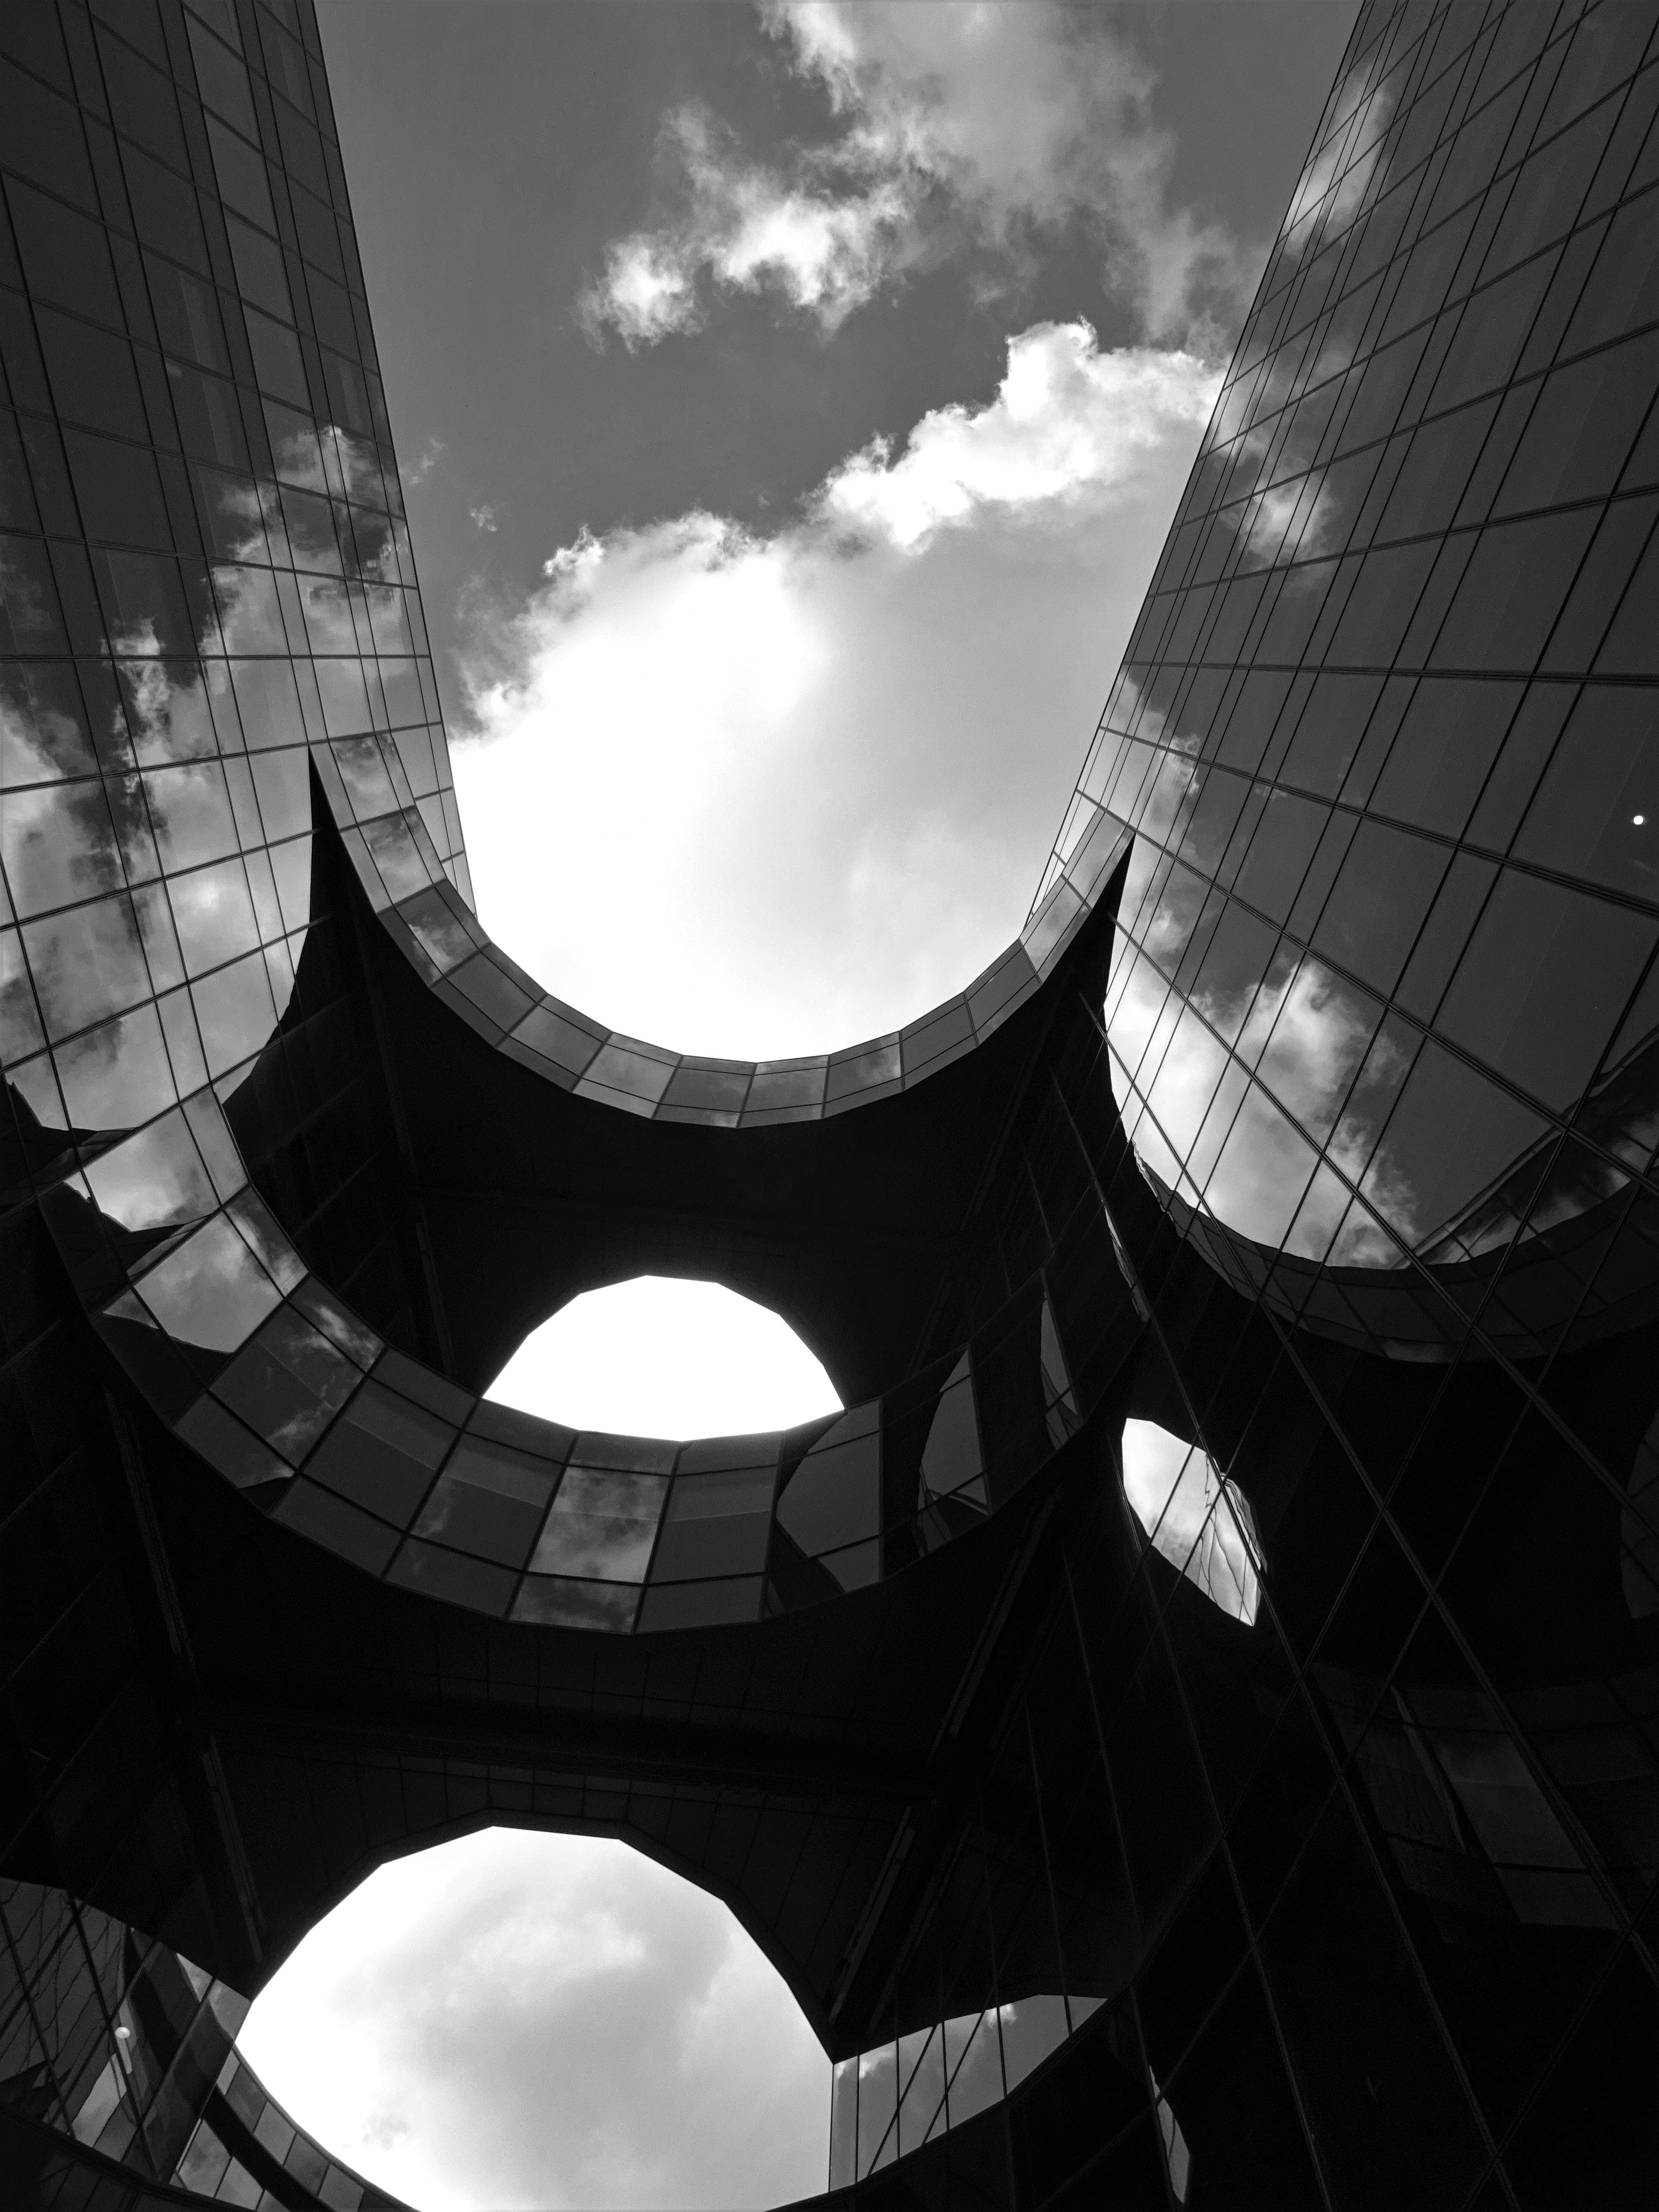 Worm's Eye view Photography of A Building